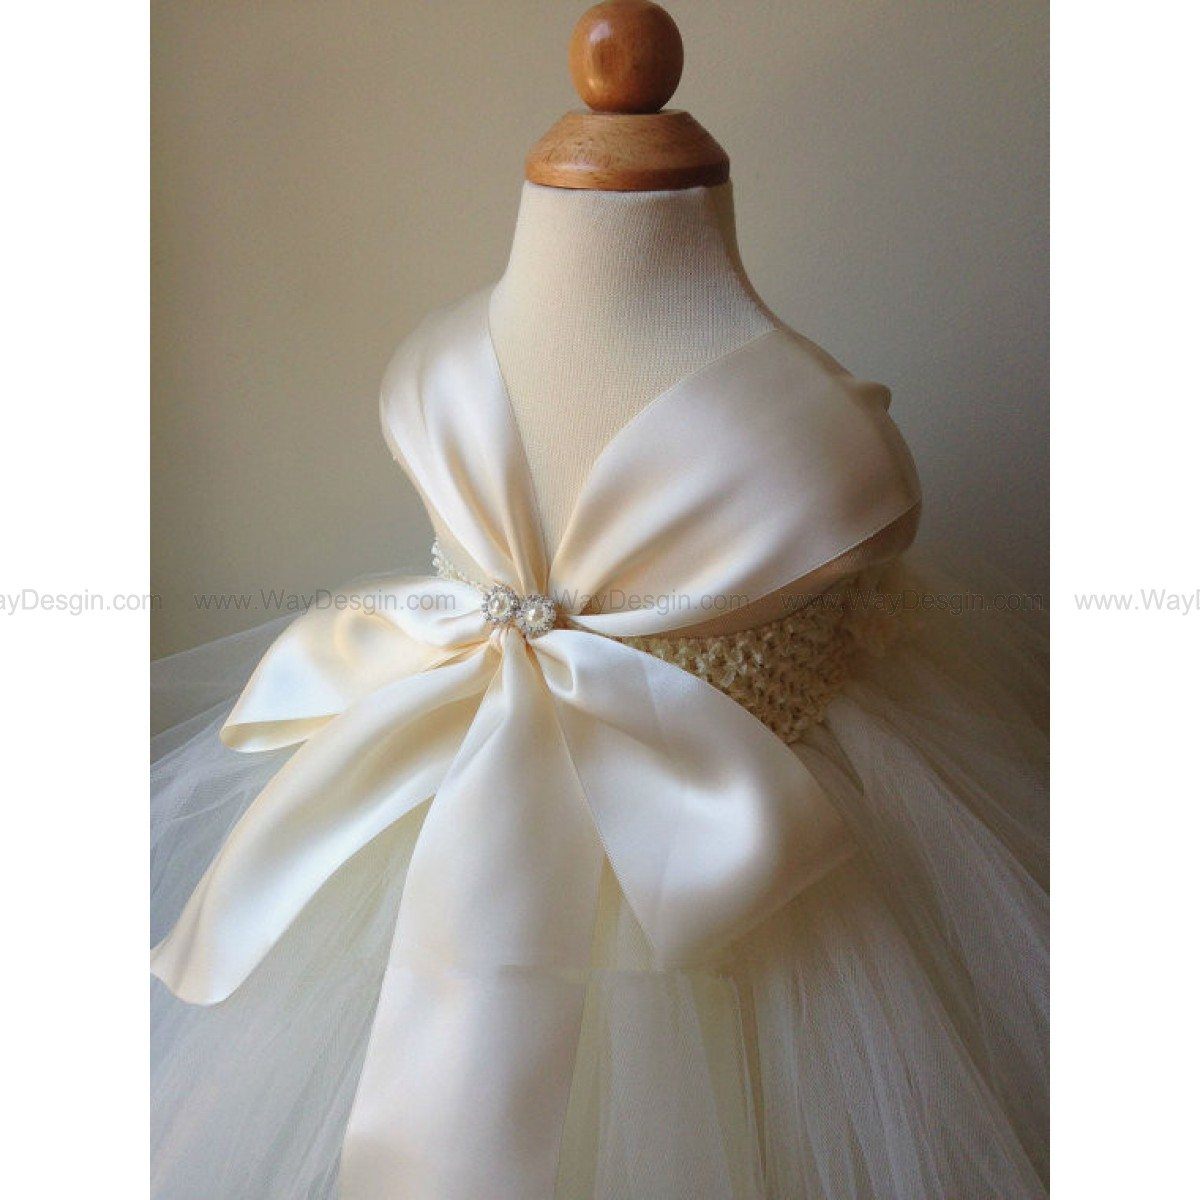 Flower girl dress, ivory and champagne tutu dress, baby tutu dress, toddler tutu dress, newborn